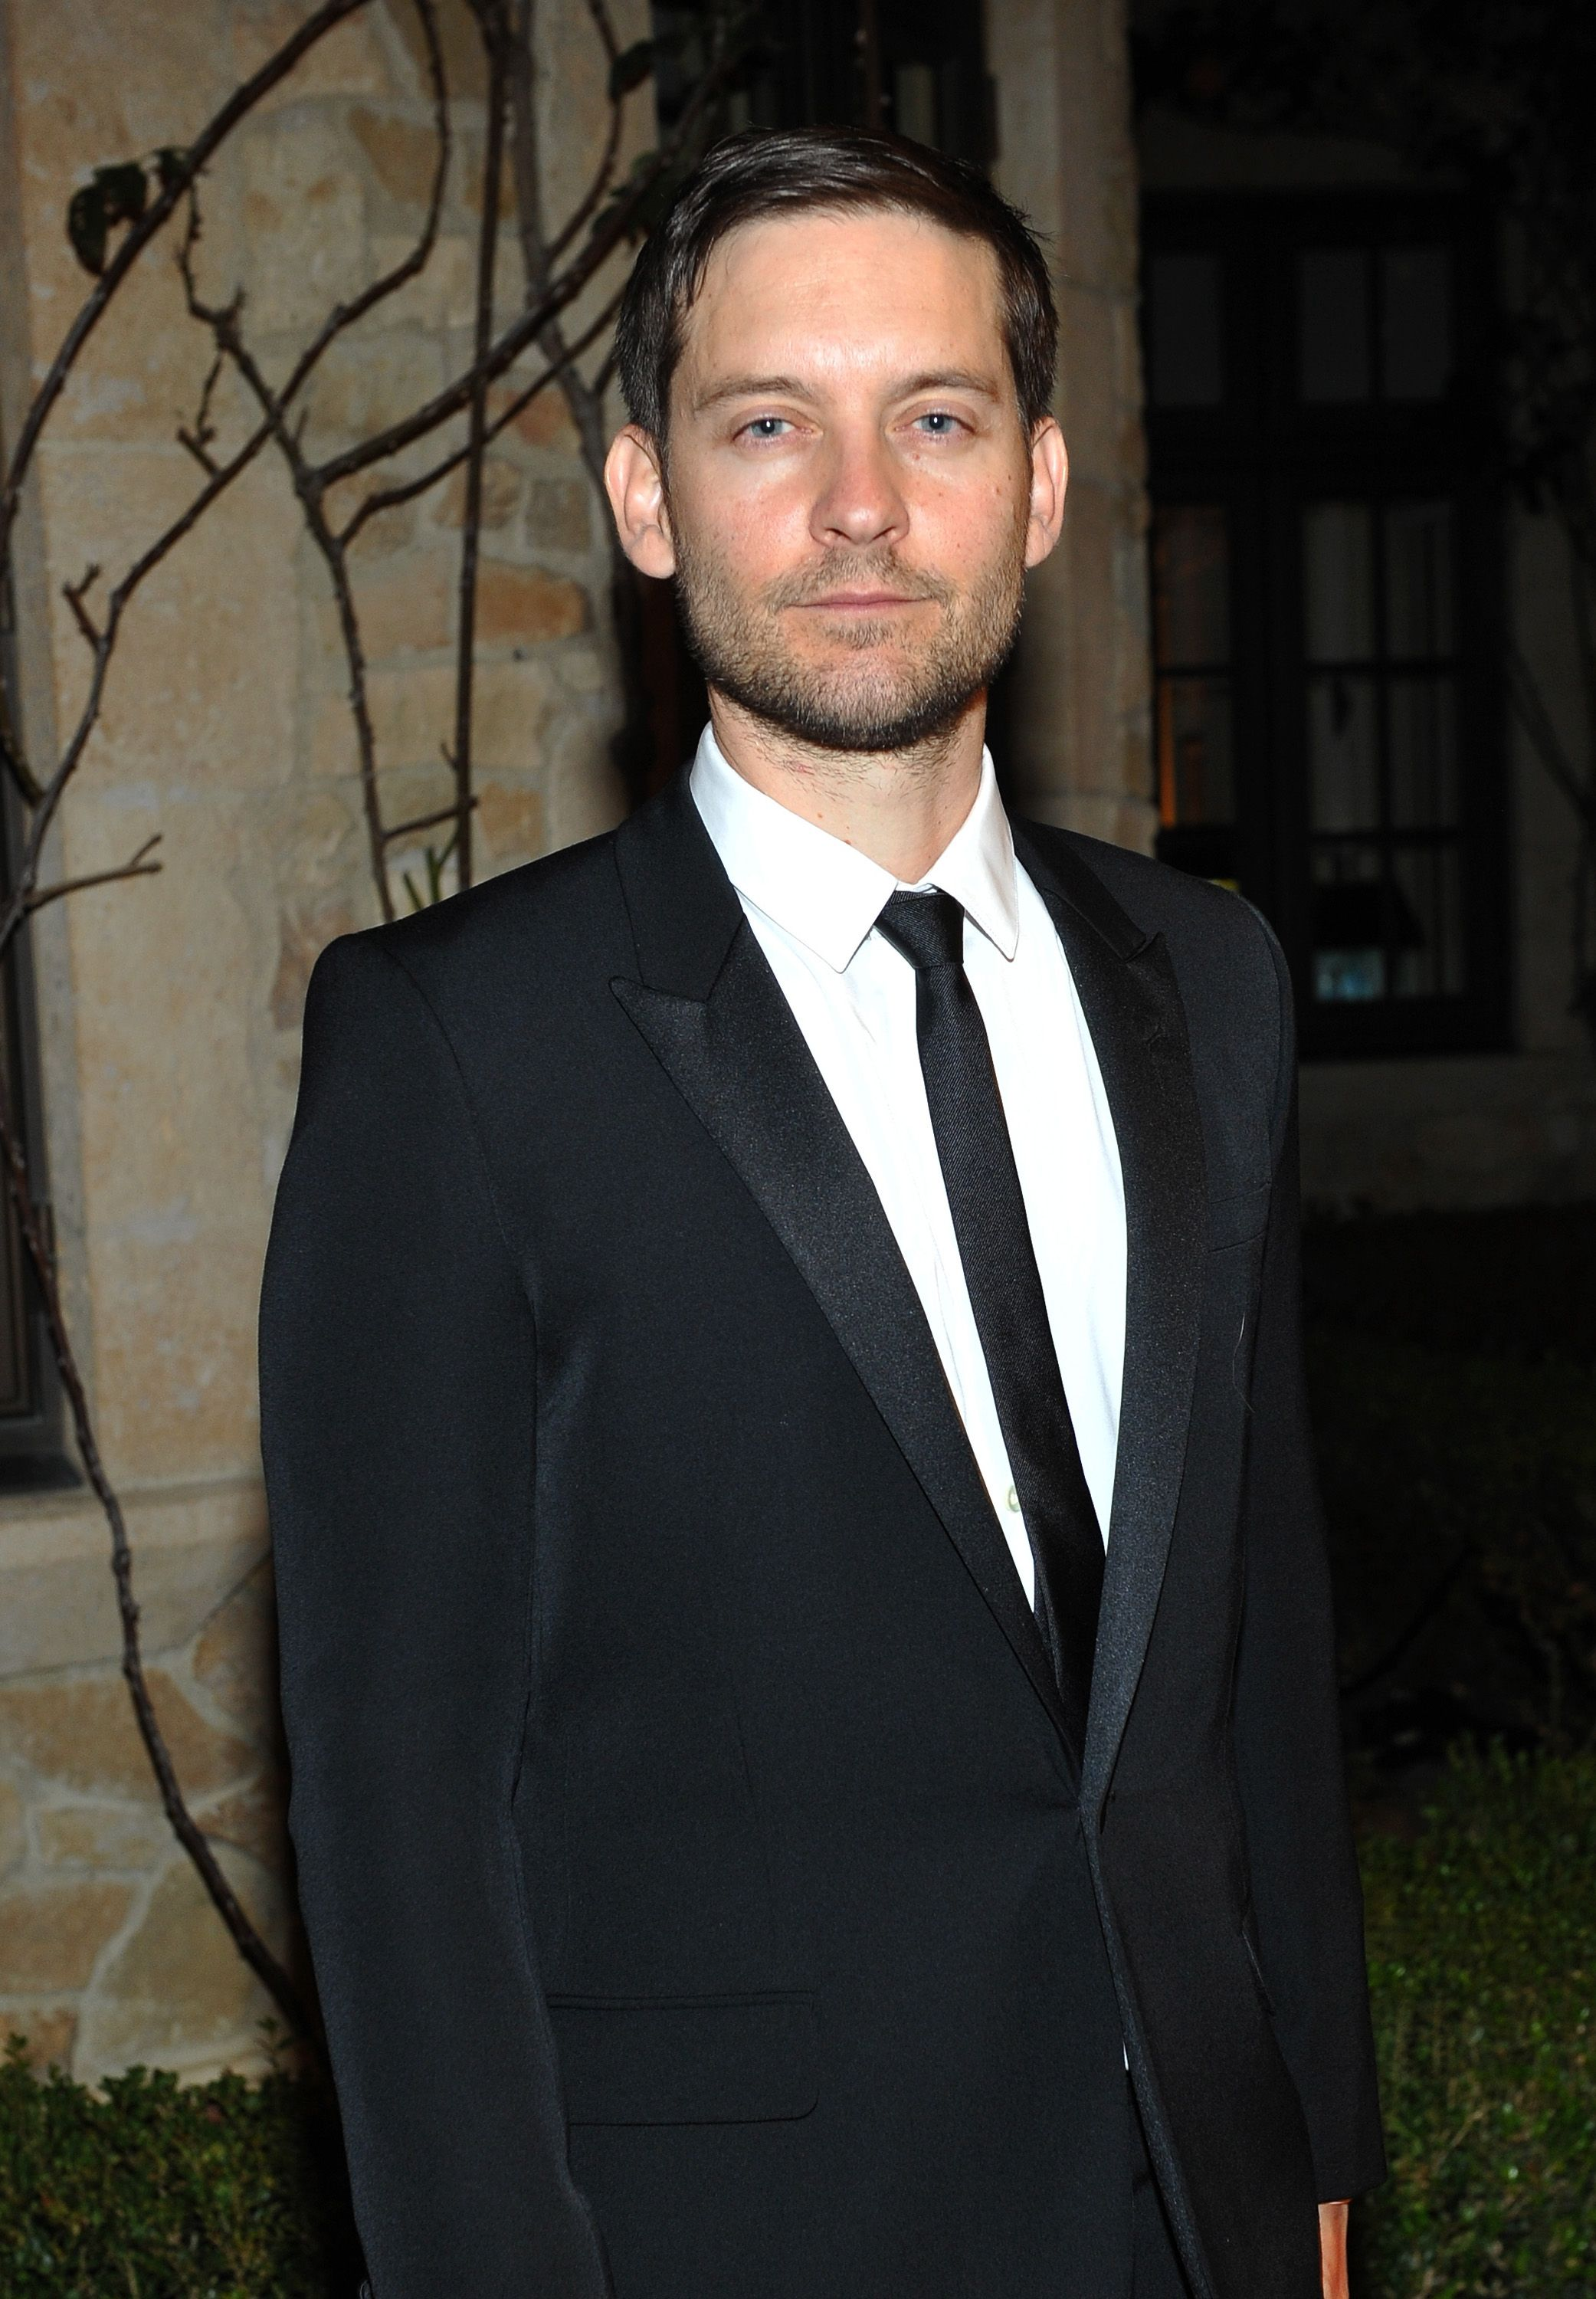 Actor Toby Maguire at the peak of his popularity / Getty Images